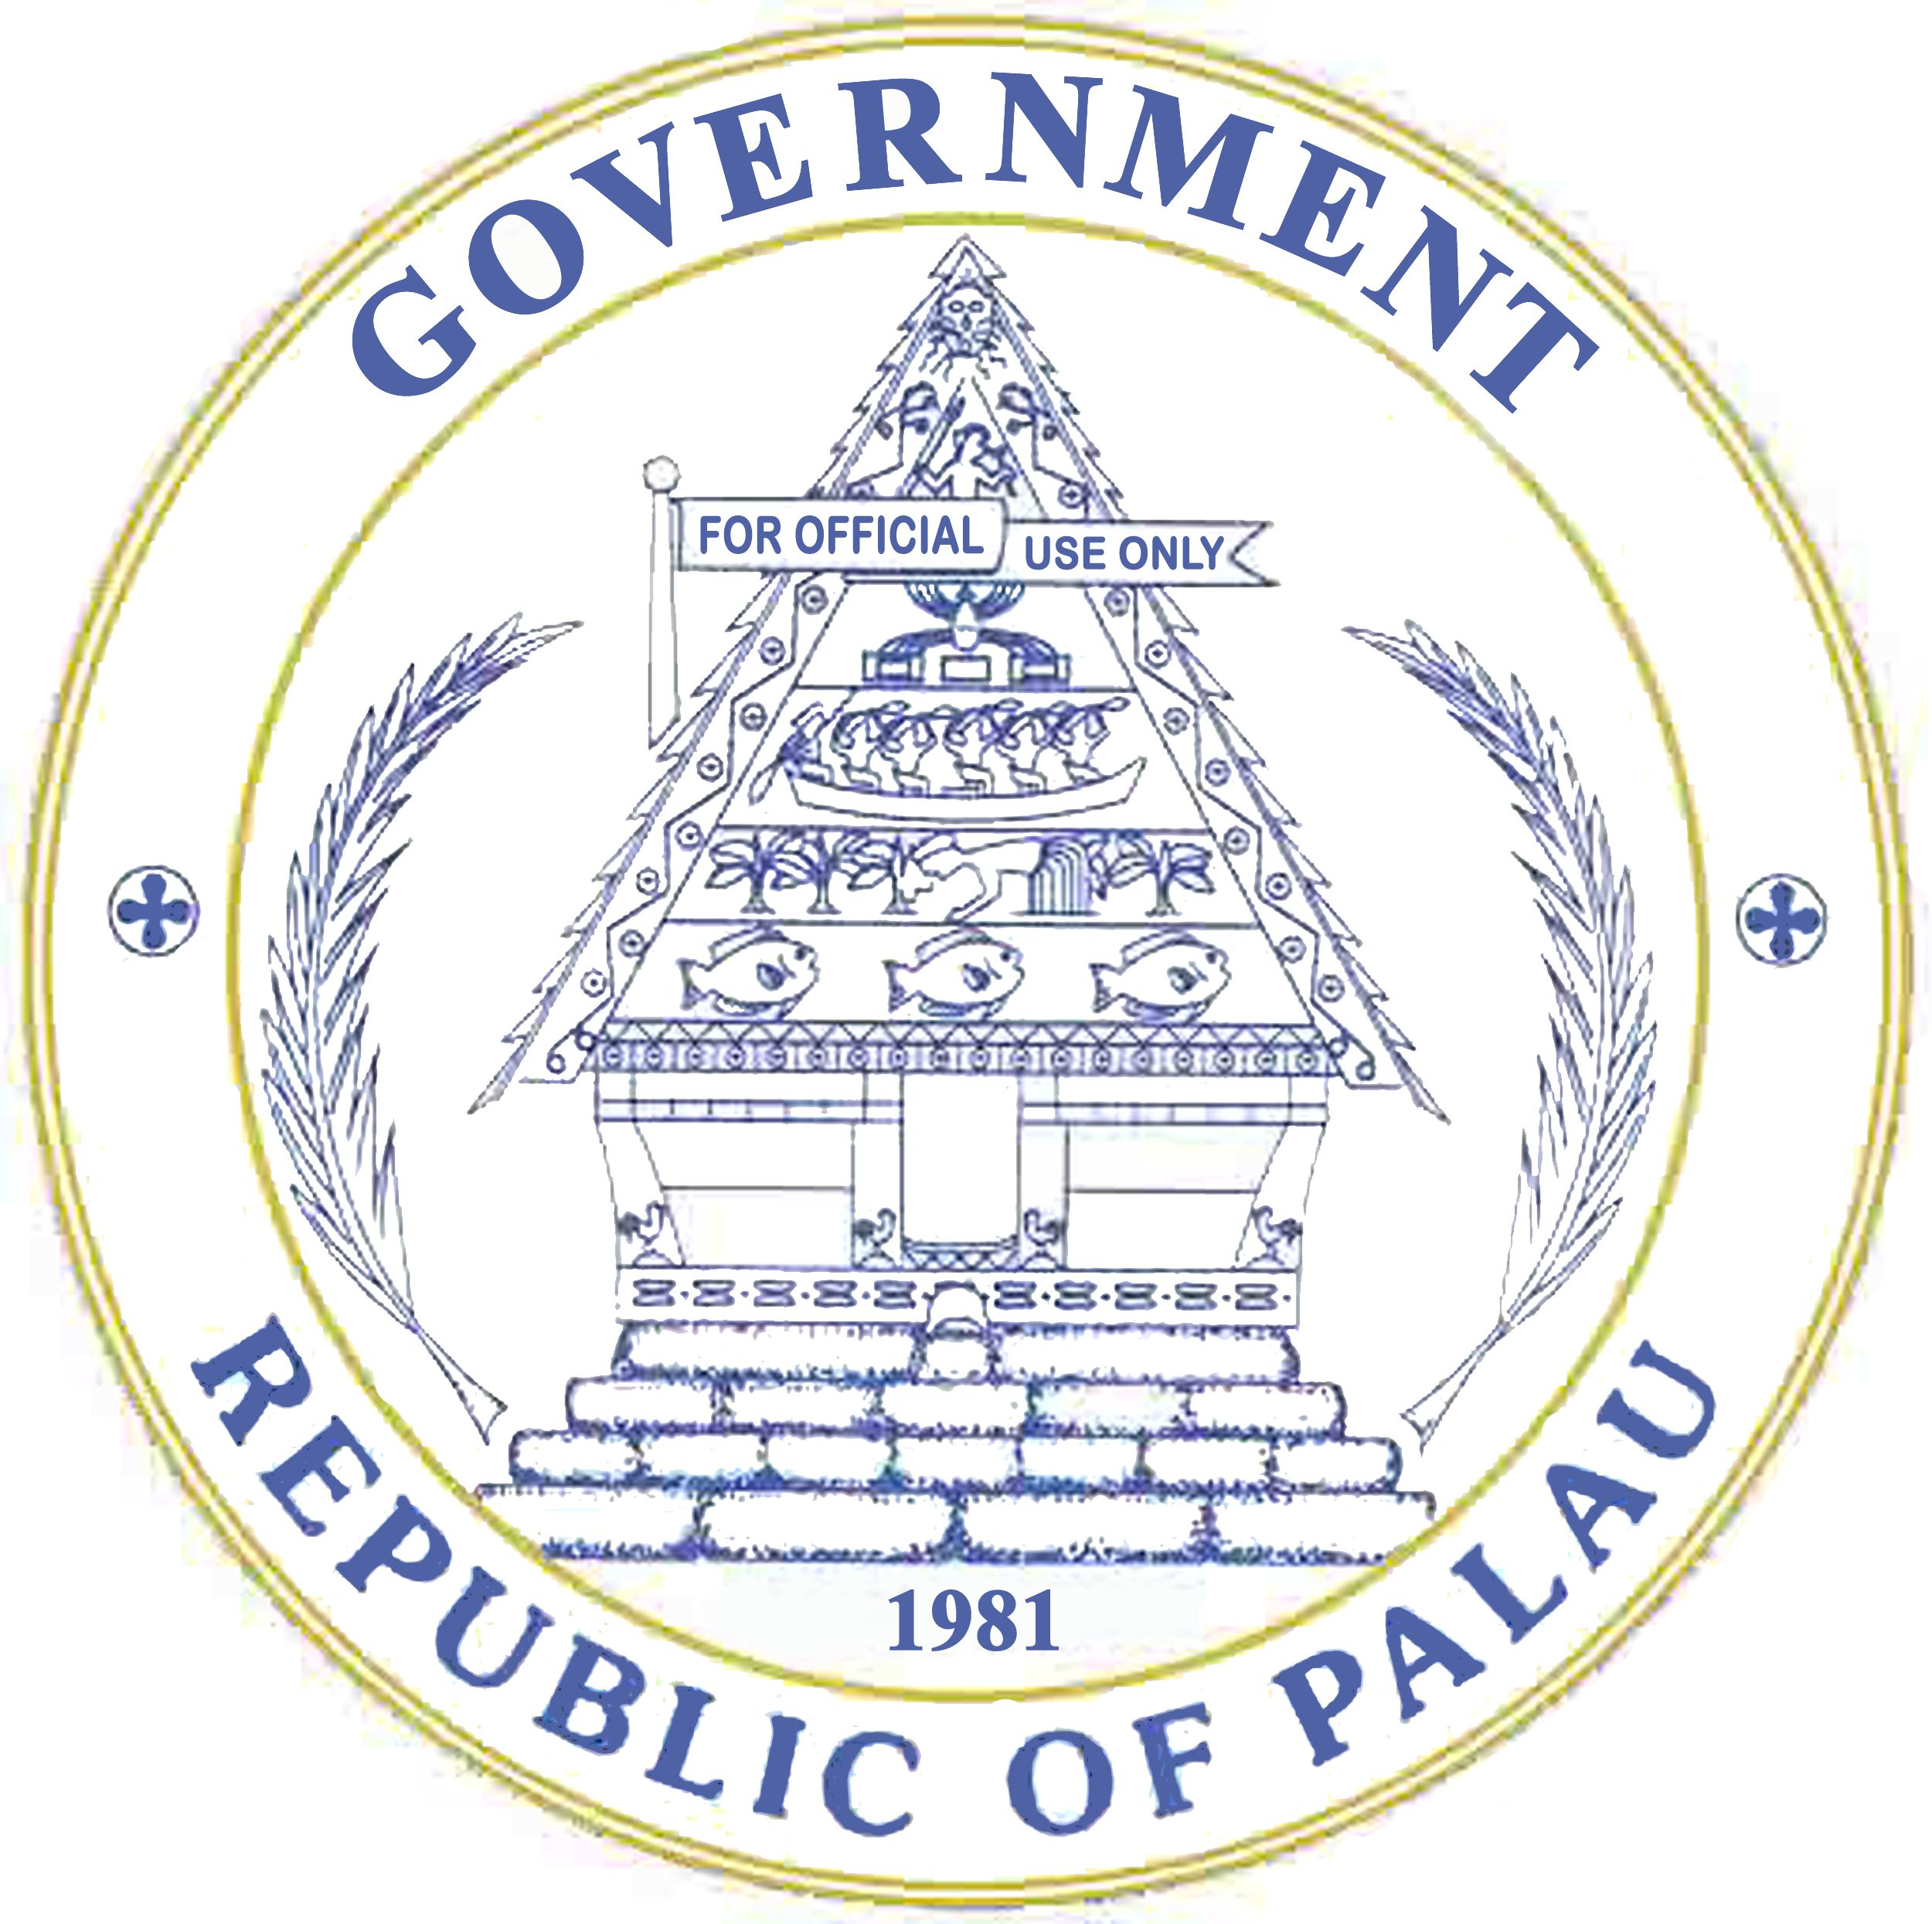 PalauGovtLogo 10inx10in Color